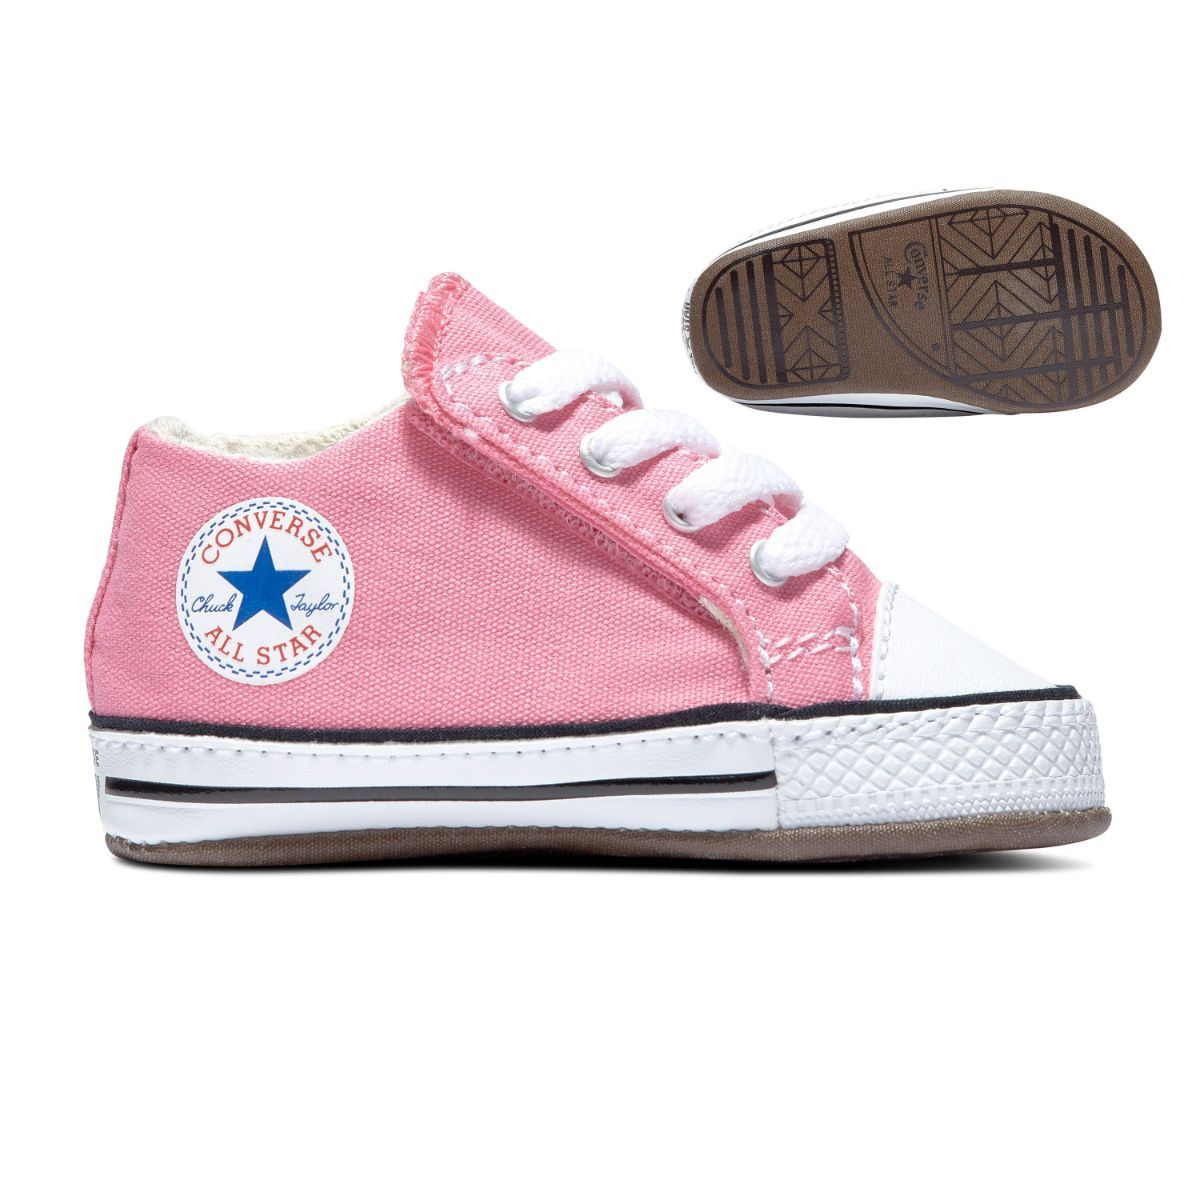 Chuck Taylor All Star Pink Cribster